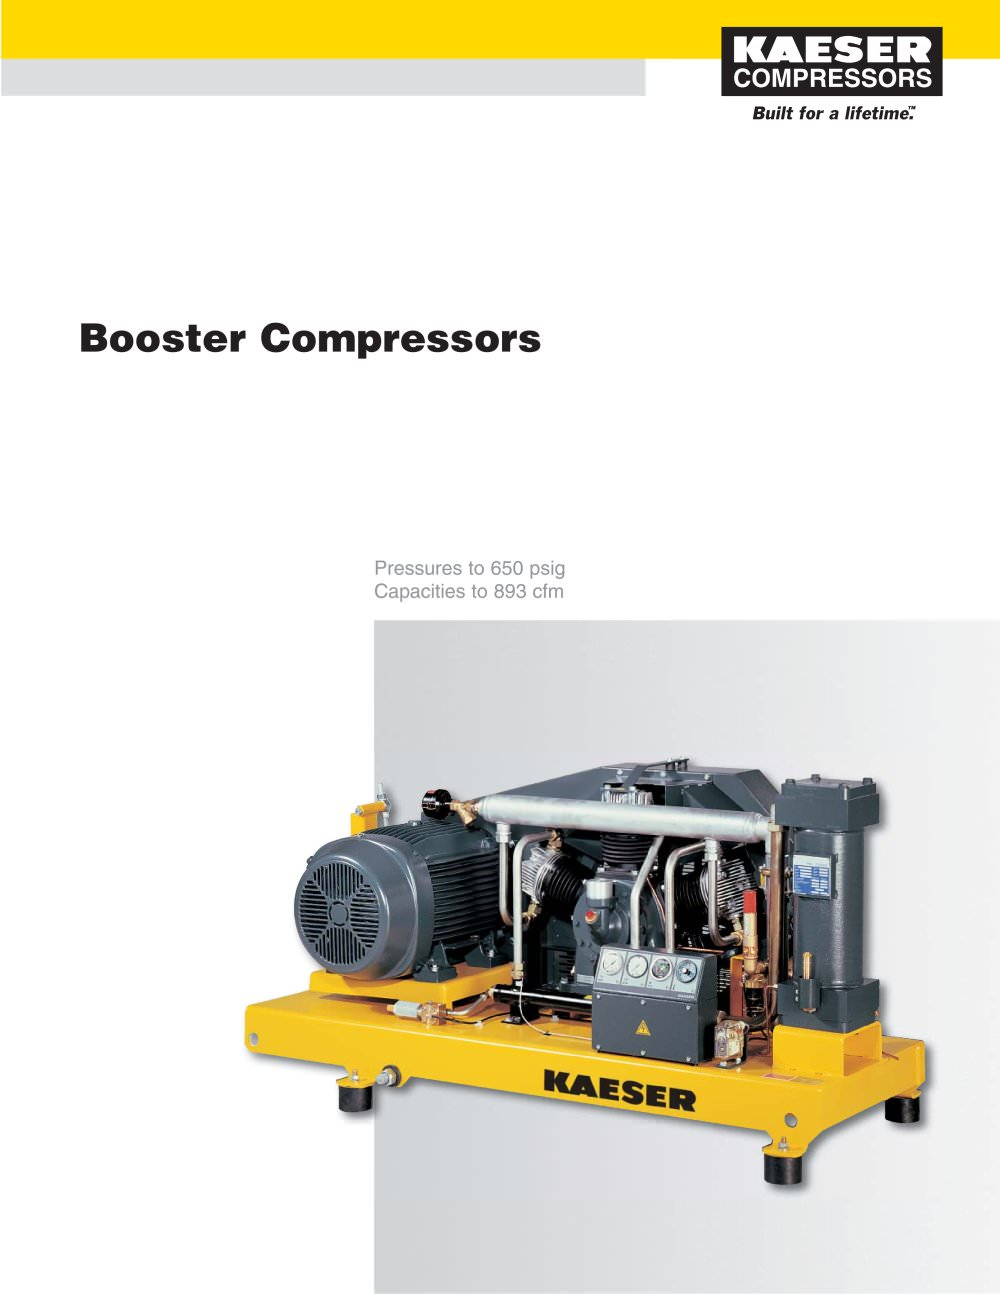 Booster Compressors - 1 / 6 Pages